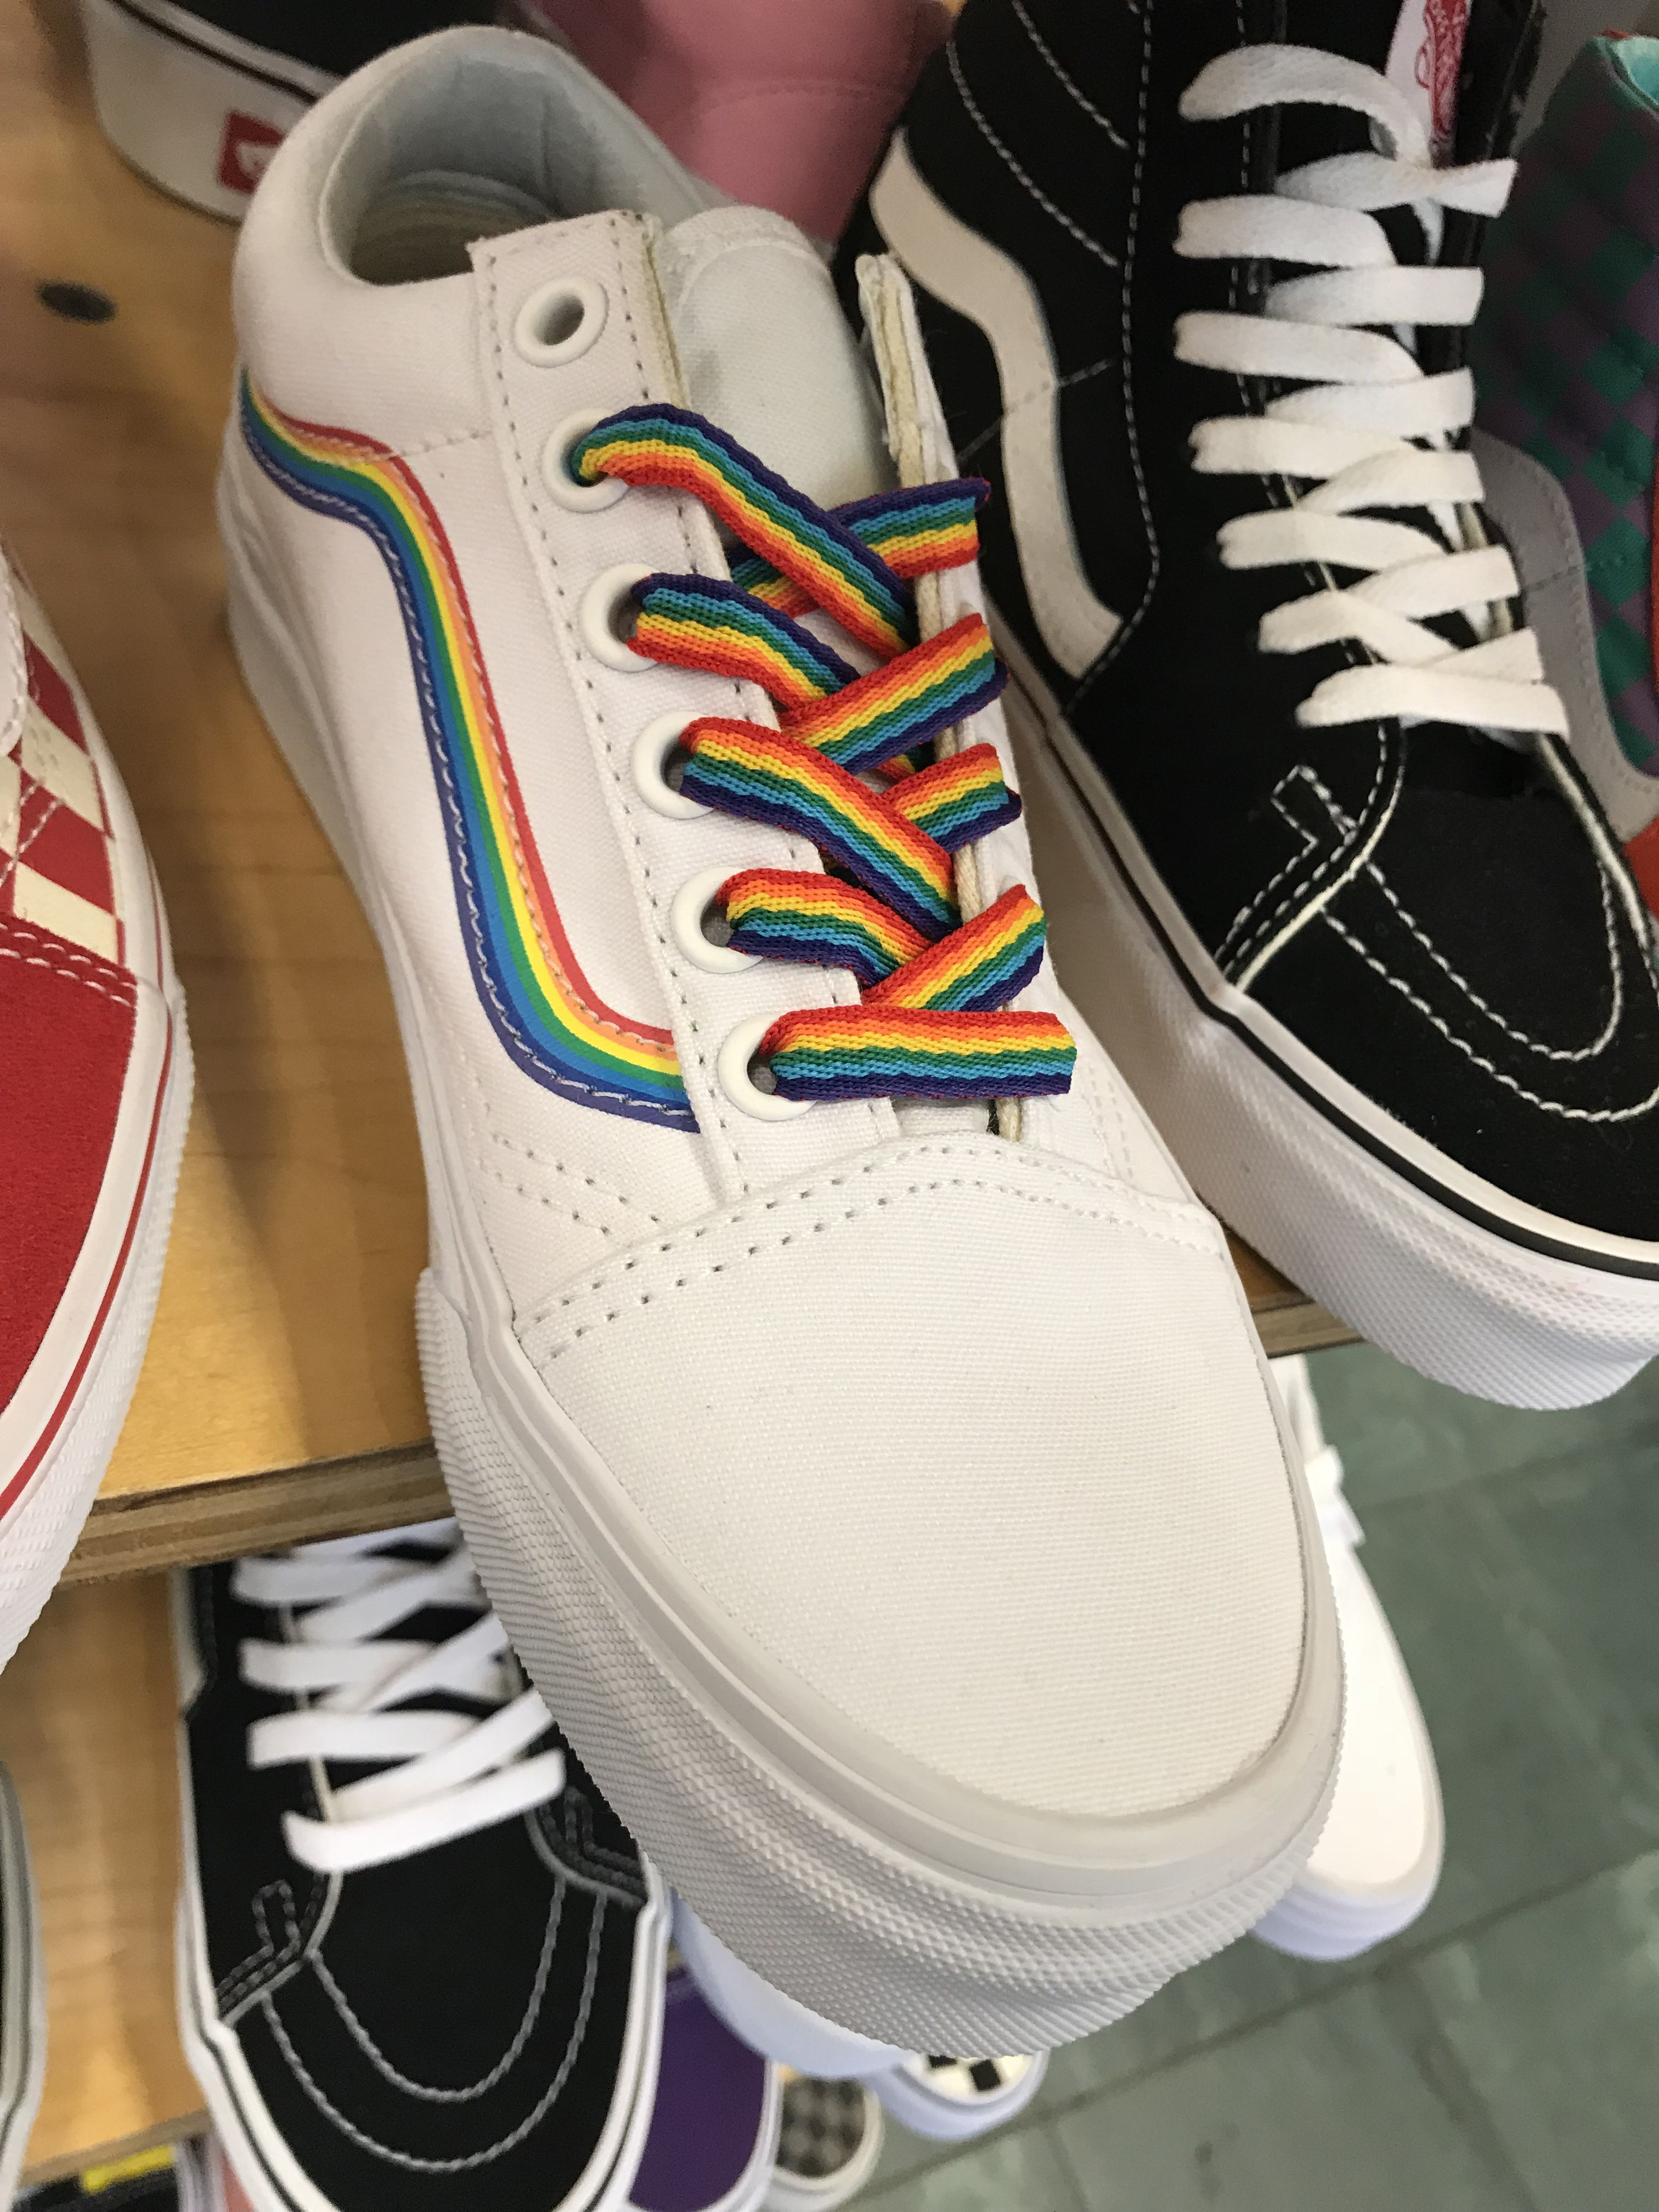 Najnowsza amazonka nowe tanie Rainbow anything is always the move. Love these pride vans ...